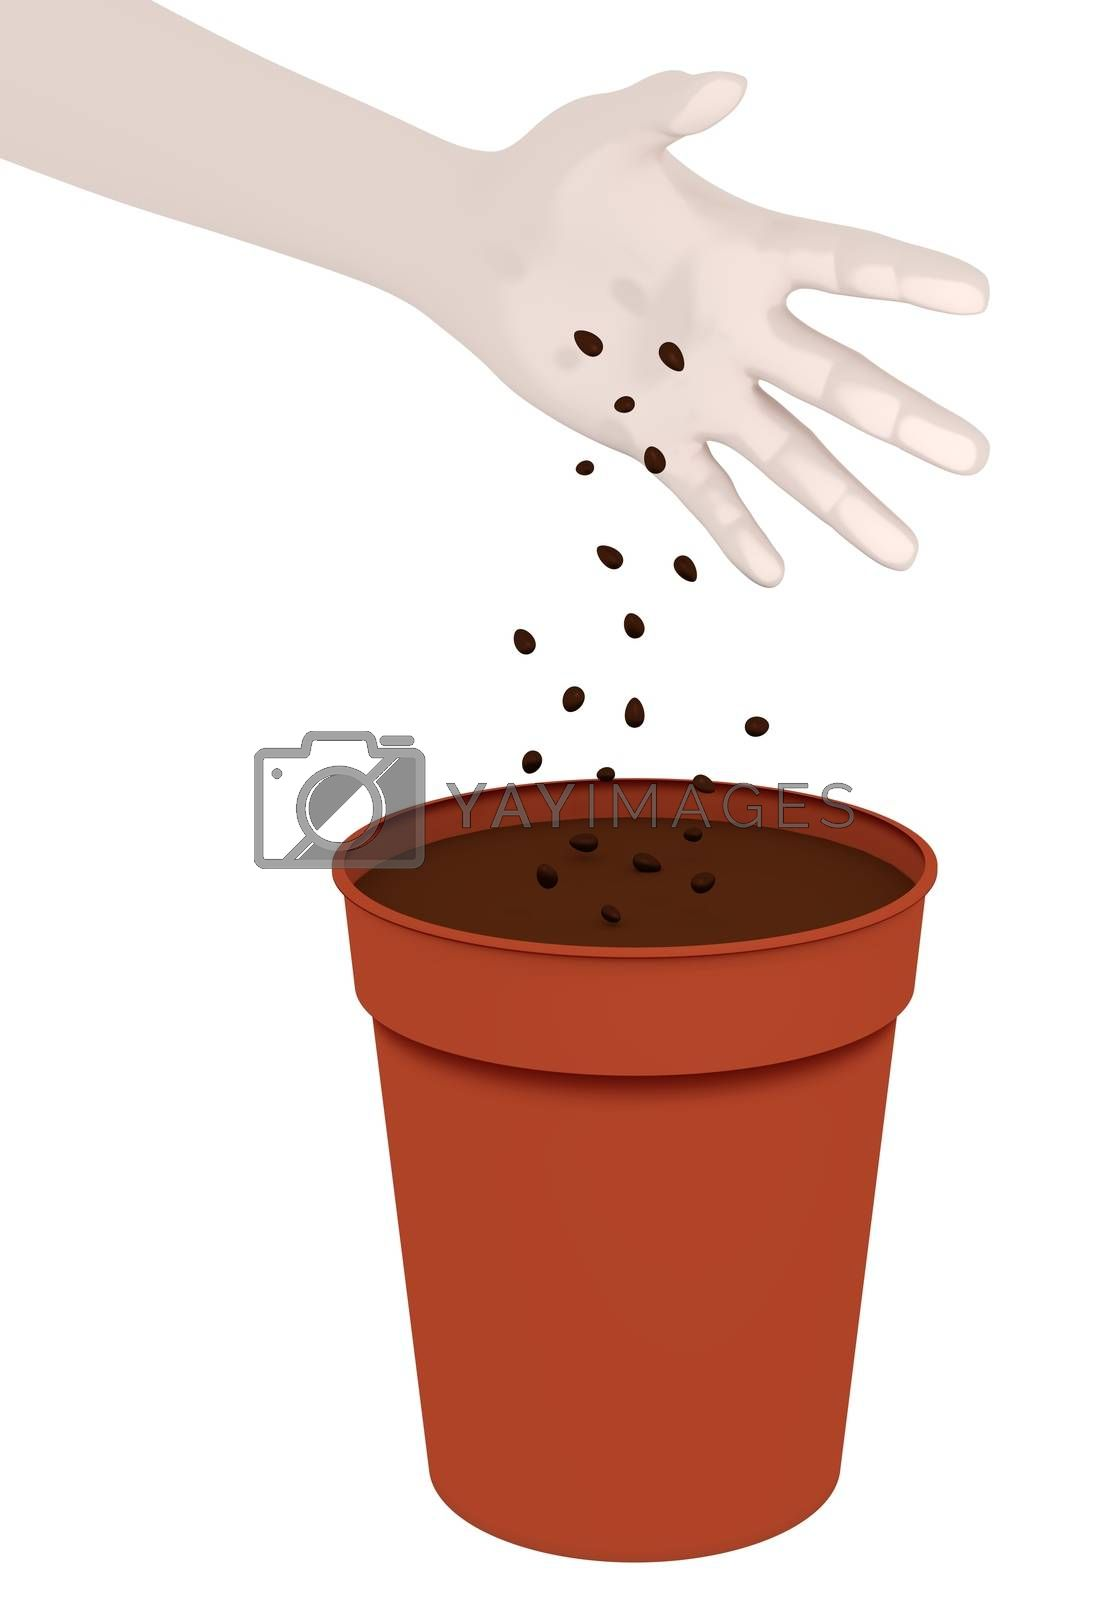 Illustration of a hand dropping seeds into a plant pot